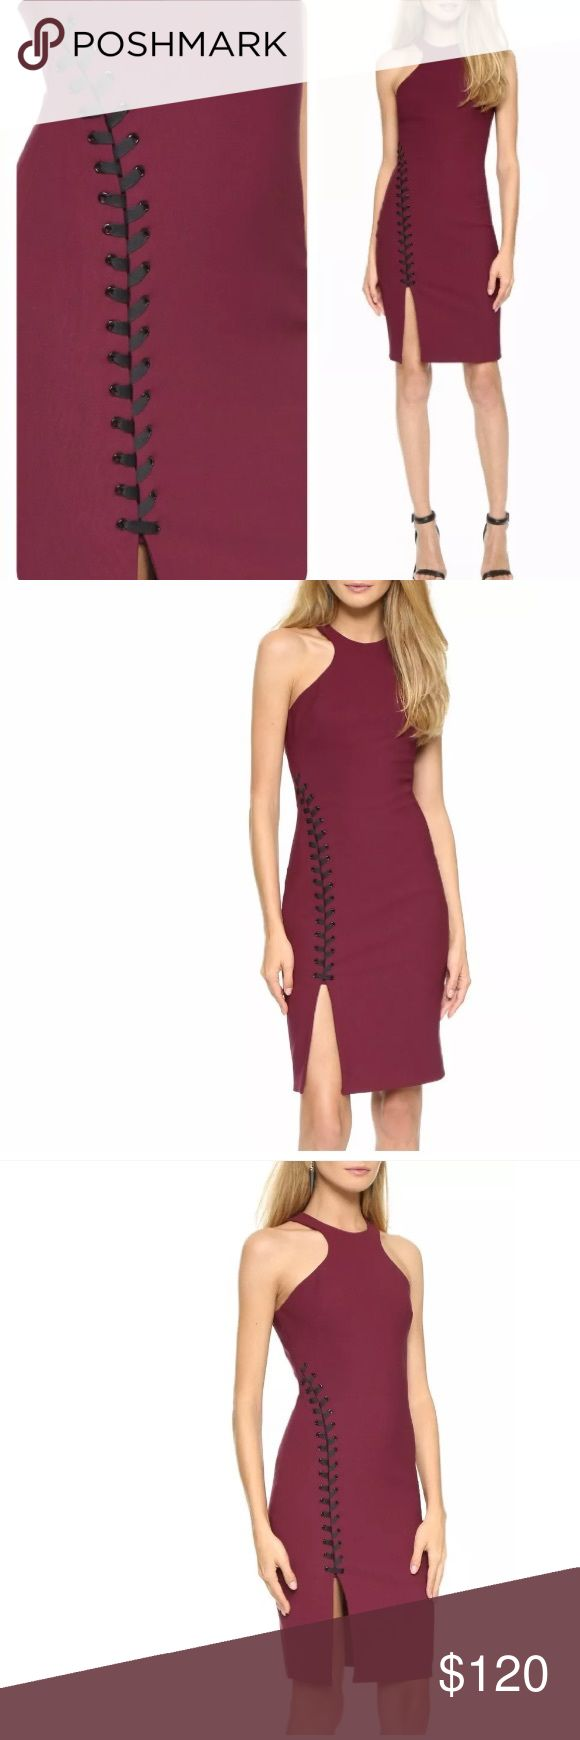 ELIZABETH AND JAMES KEATEN Lace Slit SHEATH Dress ELIZABETH and JAMES KEATEN Contrasting Lace-Up Slit Sheath Dress Retails: $445.00 Size: 10 Color: Black Cherry Thin contrast ties lace up the front slit of this contoured Elizabeth and James dress. Darts accent the bodice.  Sleeveless.  Hidden back zip Closure. Fully Lined. Fabric: Stretch Crepe Shell: 54% polyester/38% viscose/8% elastane. Lining: 97% polyester/3% spandex. Dry clean. New with tag. Item has no signs of wear. Guaranteed 100%…